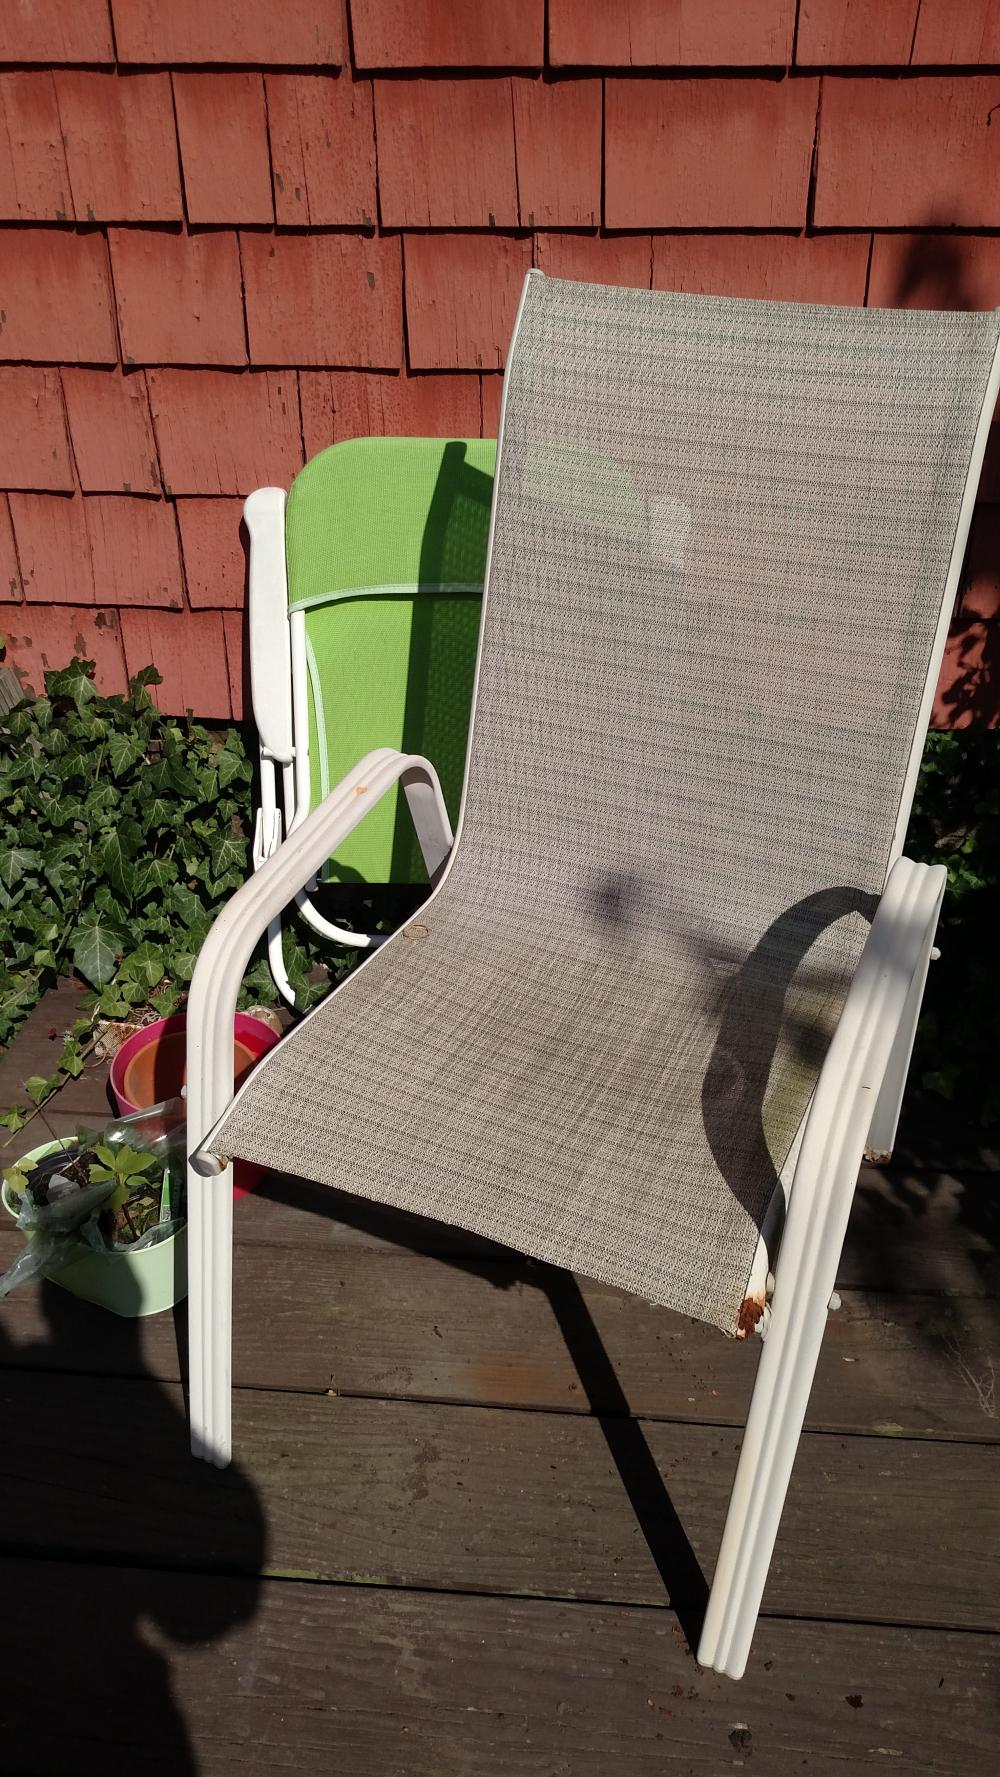 Lot Storage Bin Patio Lawn Chairs Resin Dog Patio Joblot Roughness On Chairs